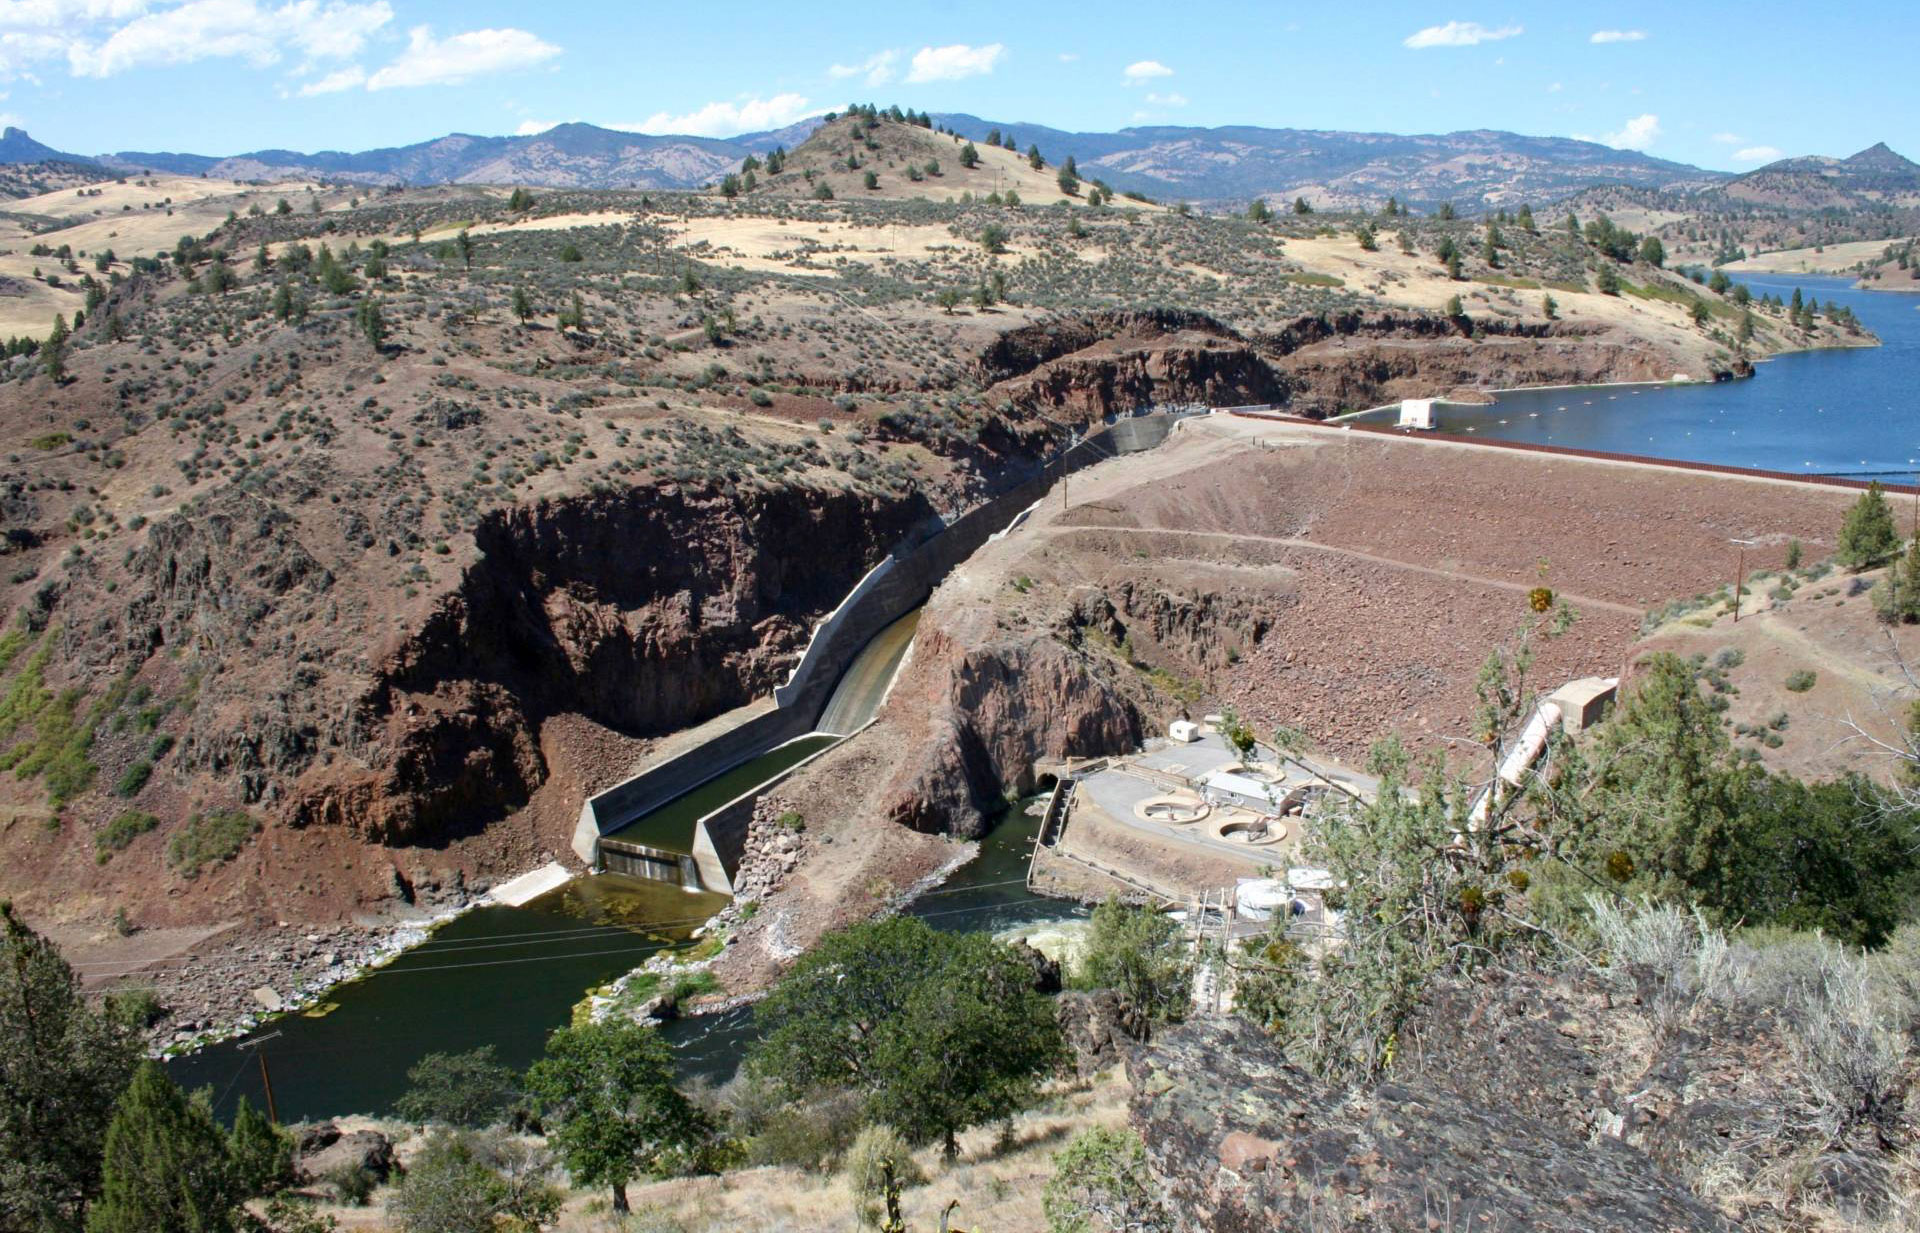 190 miles from the mouth of the Klamath River, Iron Gate Dam is one of four dams that Portland-based hydroelectric producer PacifiCorp is seeking to decommission and remove. PacifiCorp wants to transfer responsibility for the dam to a nonprofit company, which would spend $290 million on removing the dams, beginning in 2020.